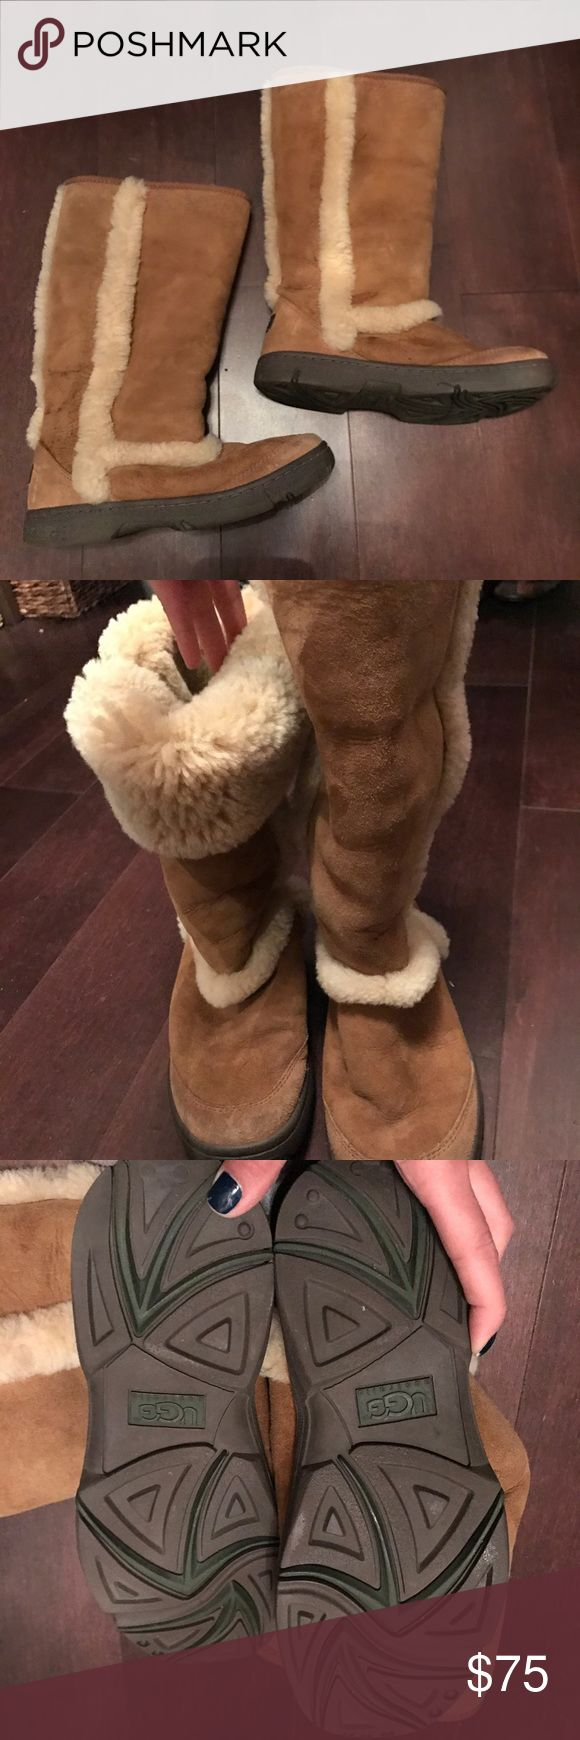 Authentic womens Ugg Boots n size 8 no box. Authentic Ugg Boots great condition size 8 no box. Can be worn all the way up or flapped down UGG Shoes Winter & Rain Boots